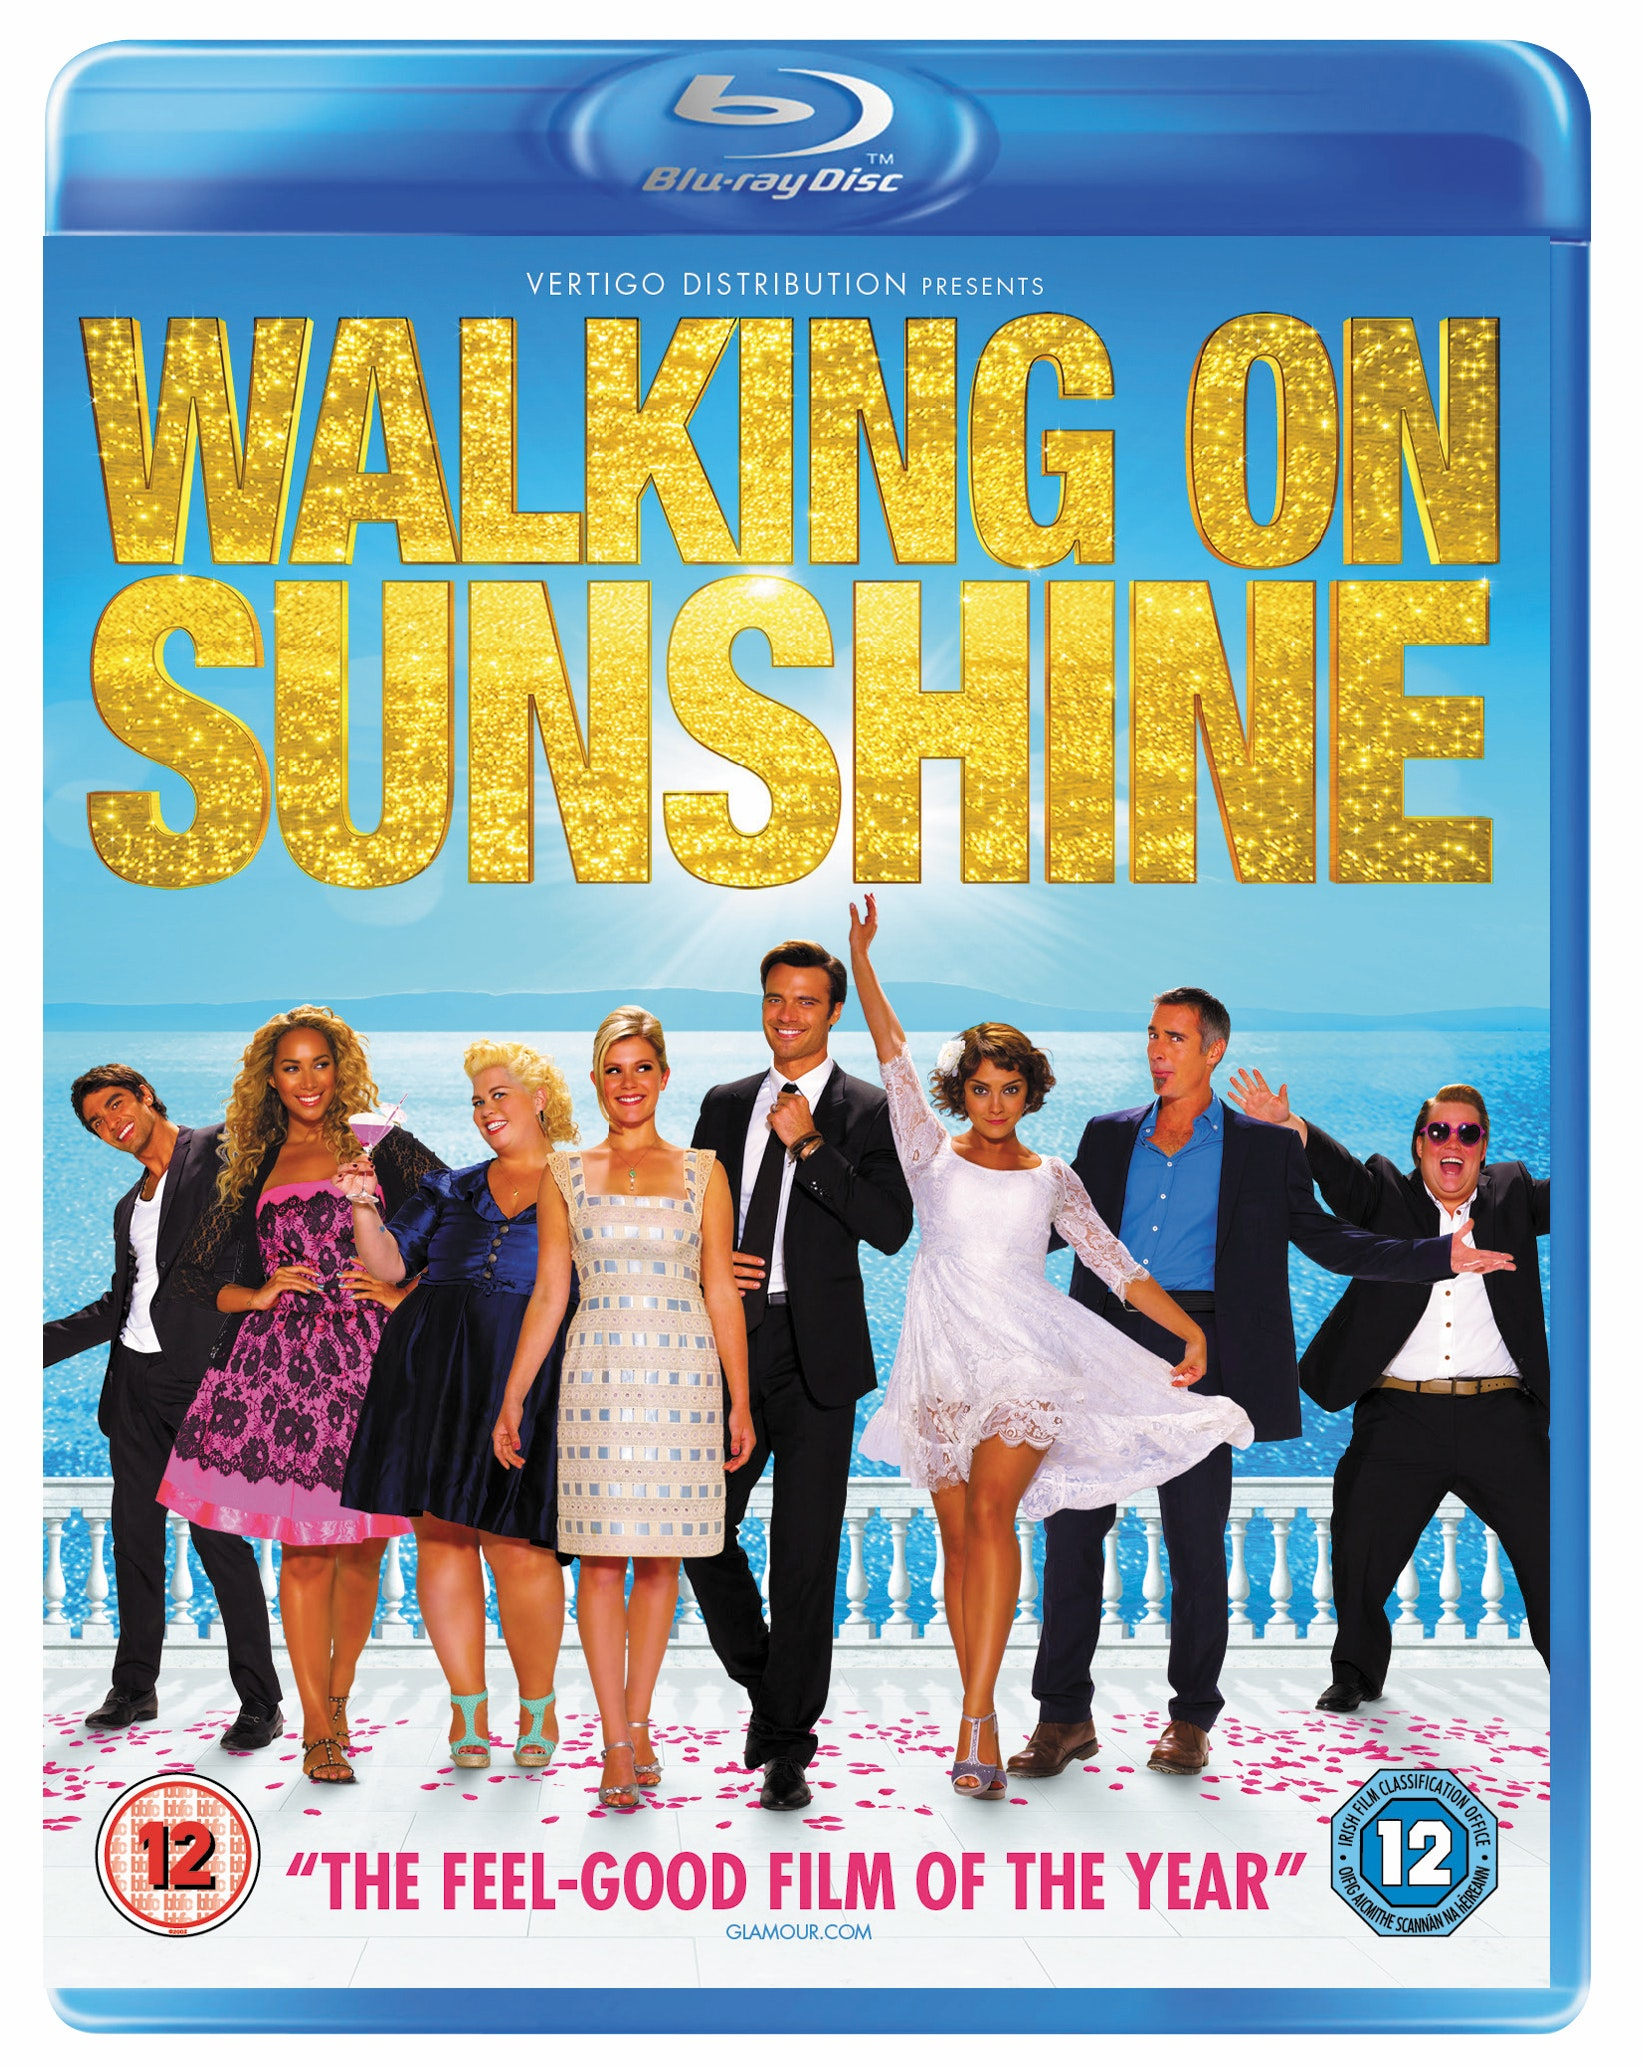 Walking on Sunshine sweepstakes